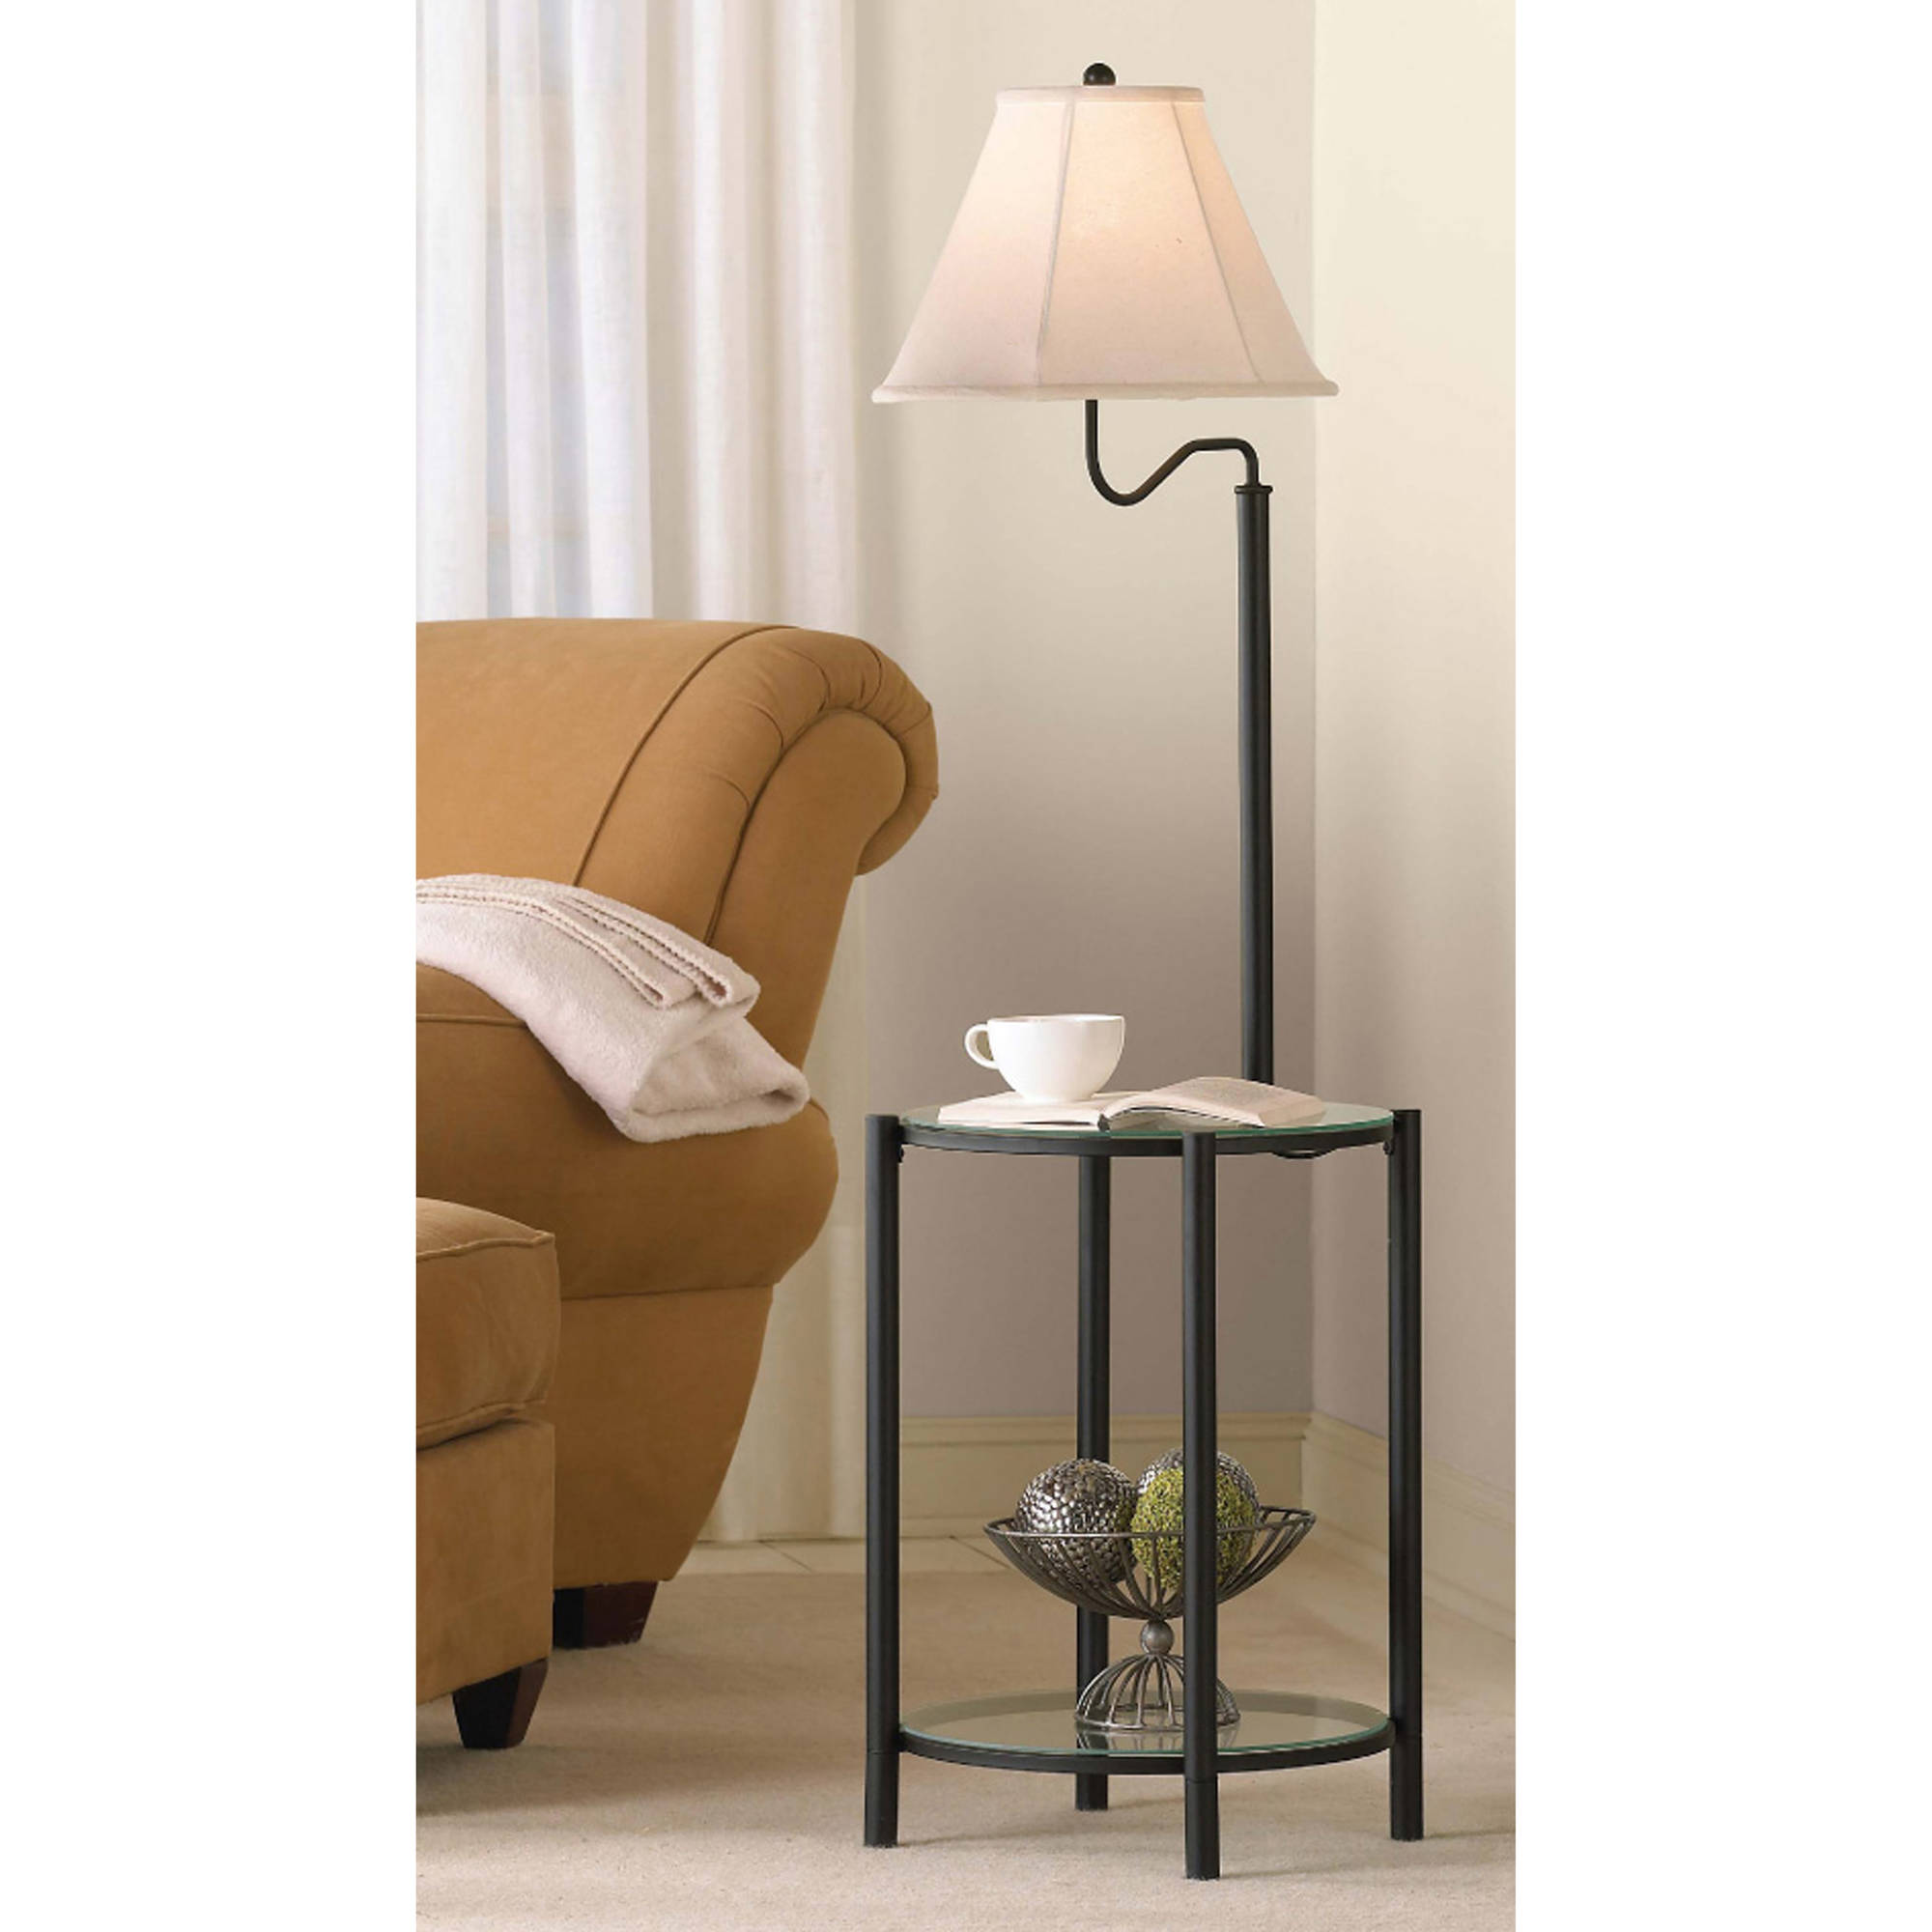 Elegant Mainstays Glass End Table Floor Lamp, Matte Black, CFL Bulb Included